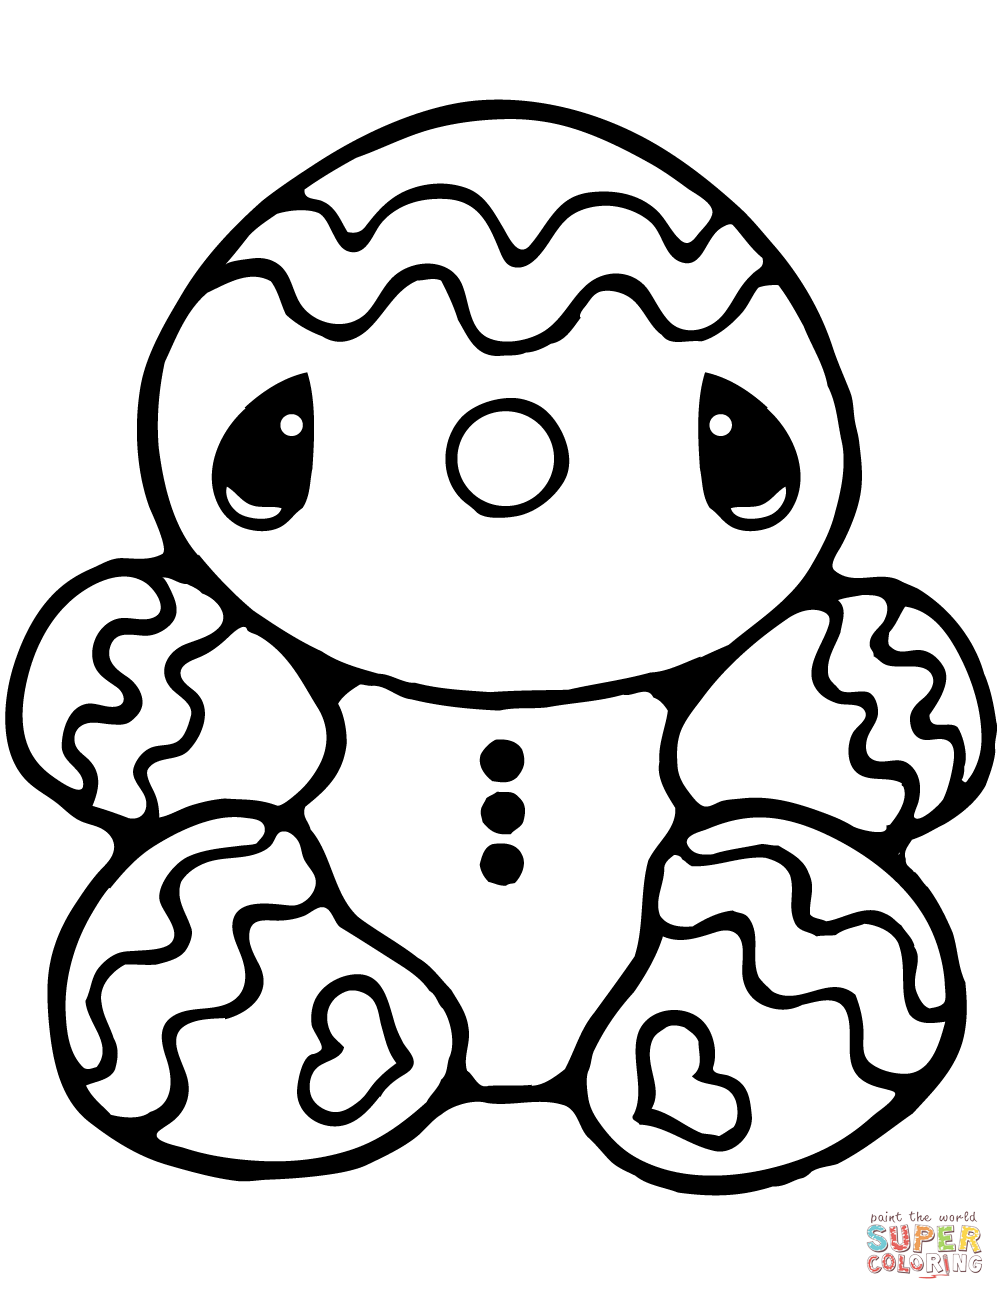 Christmas Coloring Gingerbread Man With Tiny Page Free Printable Pages